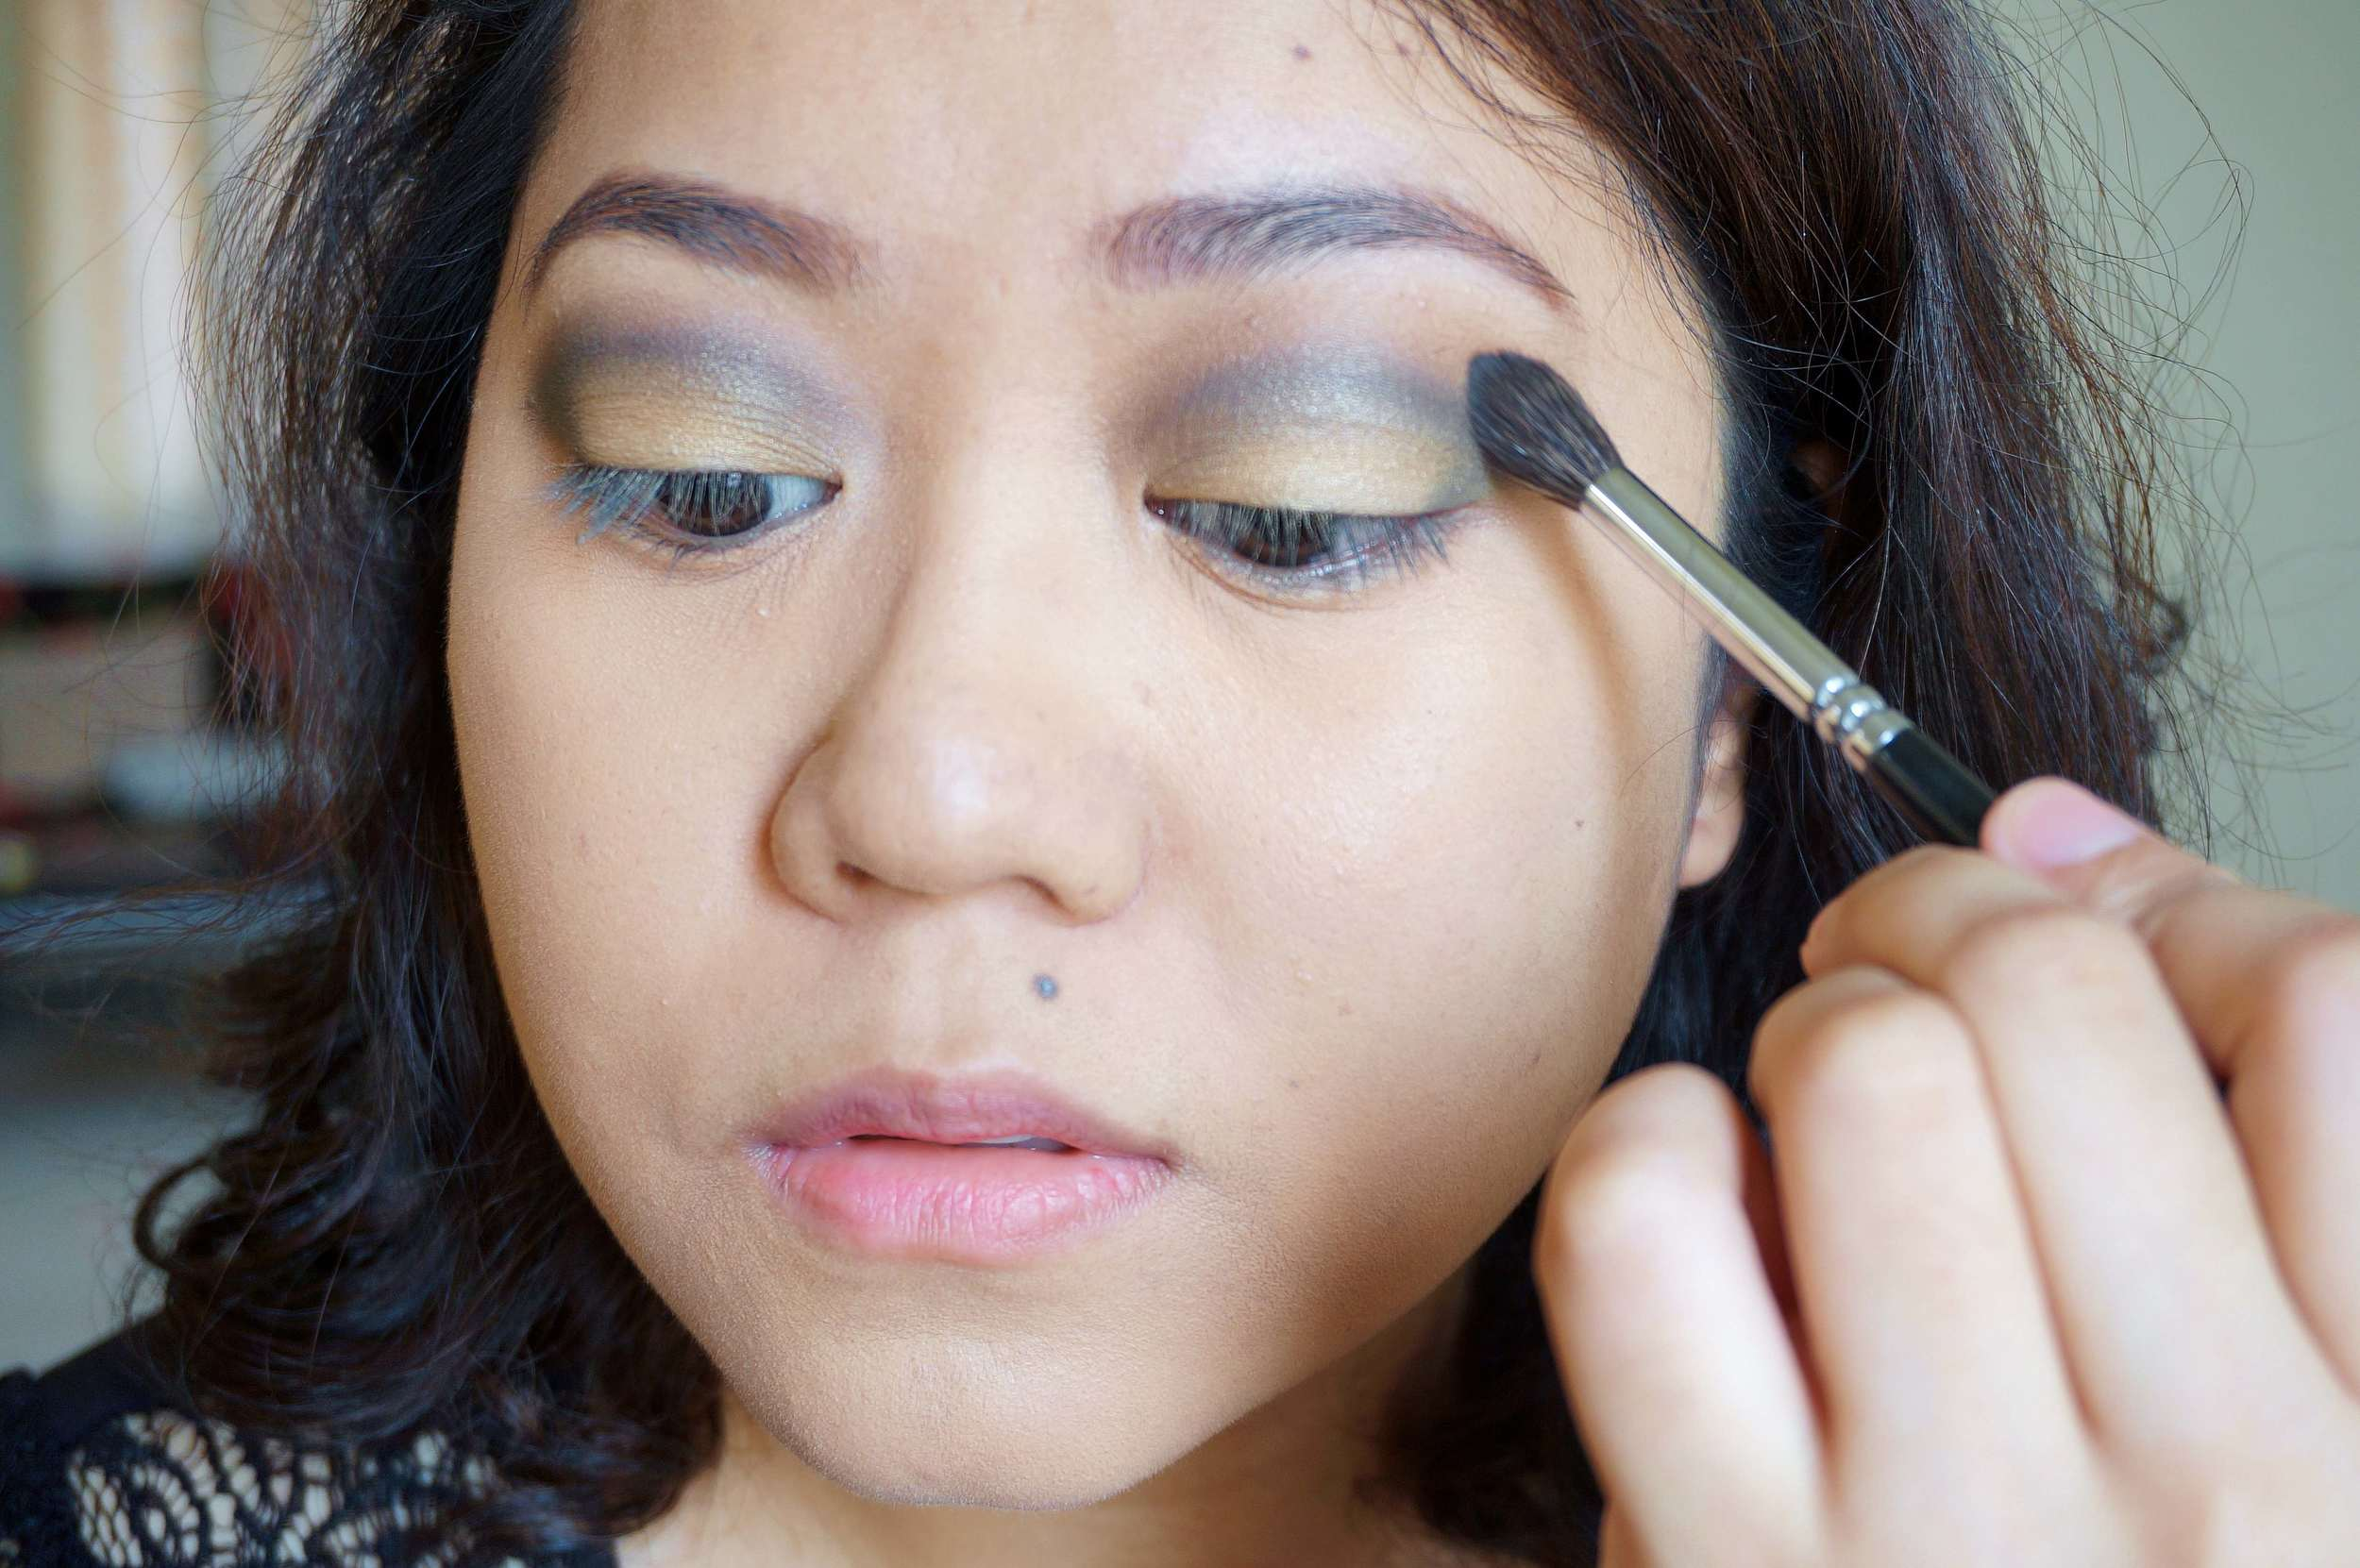 The best brush for this is a fluffy, animal hair one with a domed tip. Apply the blending shade right on the outer edges of the smoky shadow and just blend away!